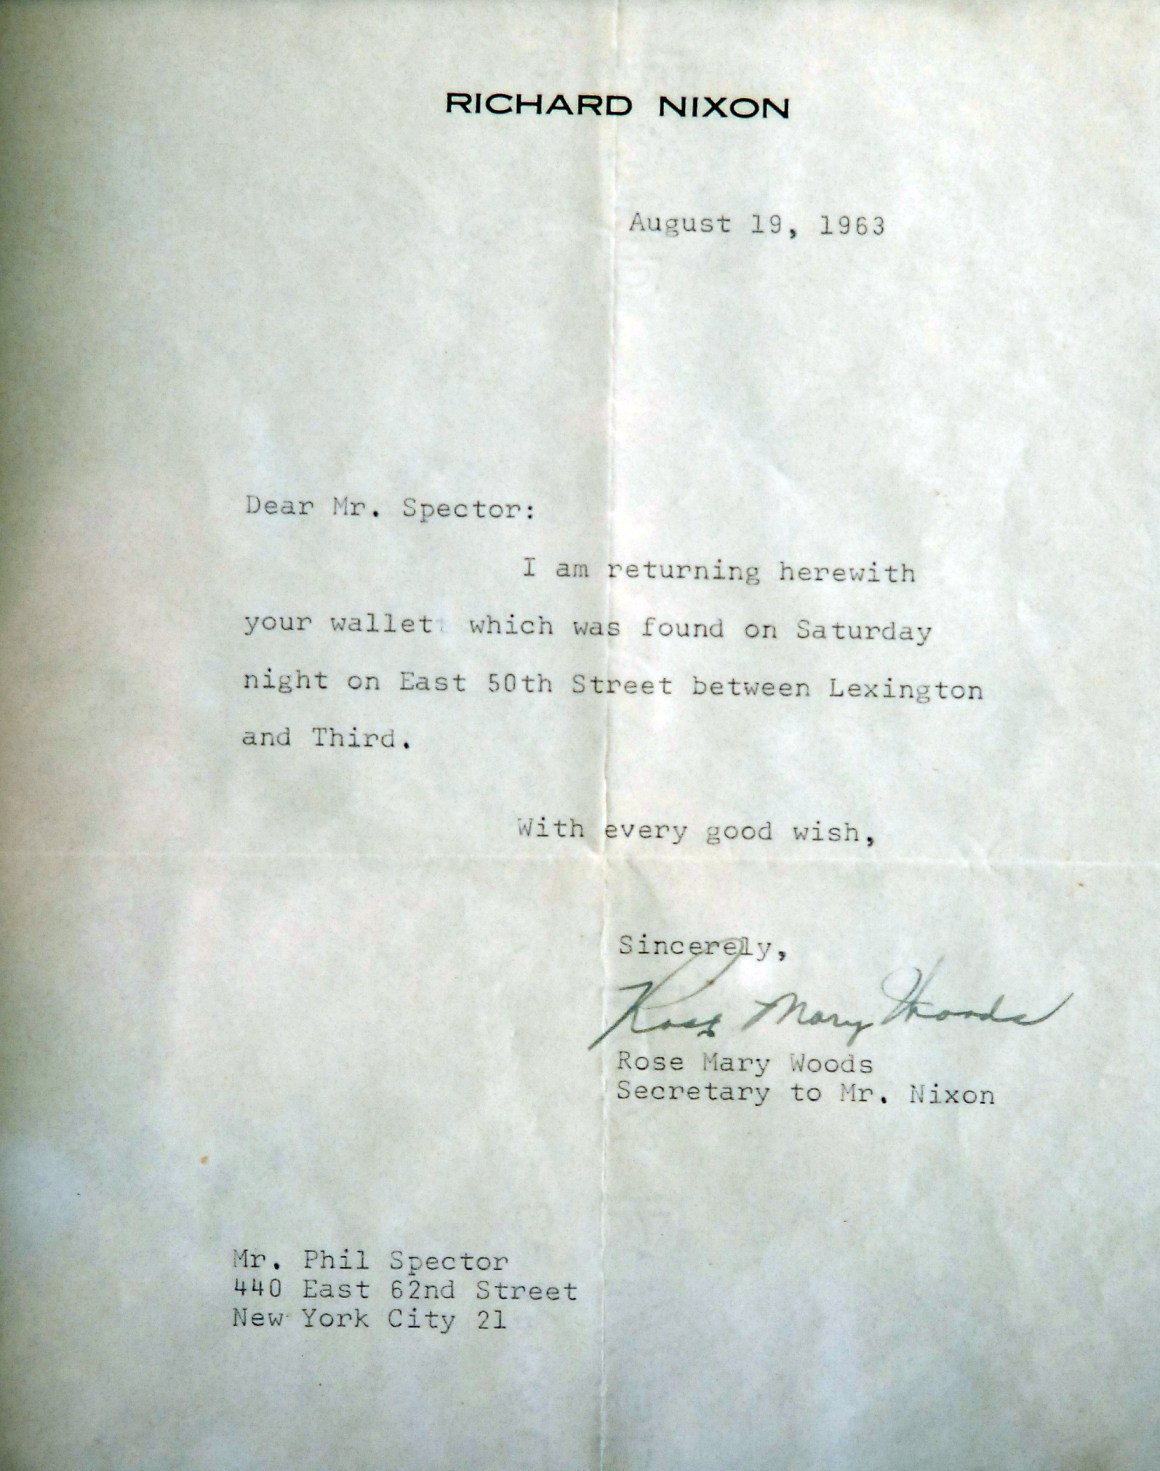 A letter from Richard Nixon to Spector, 1963